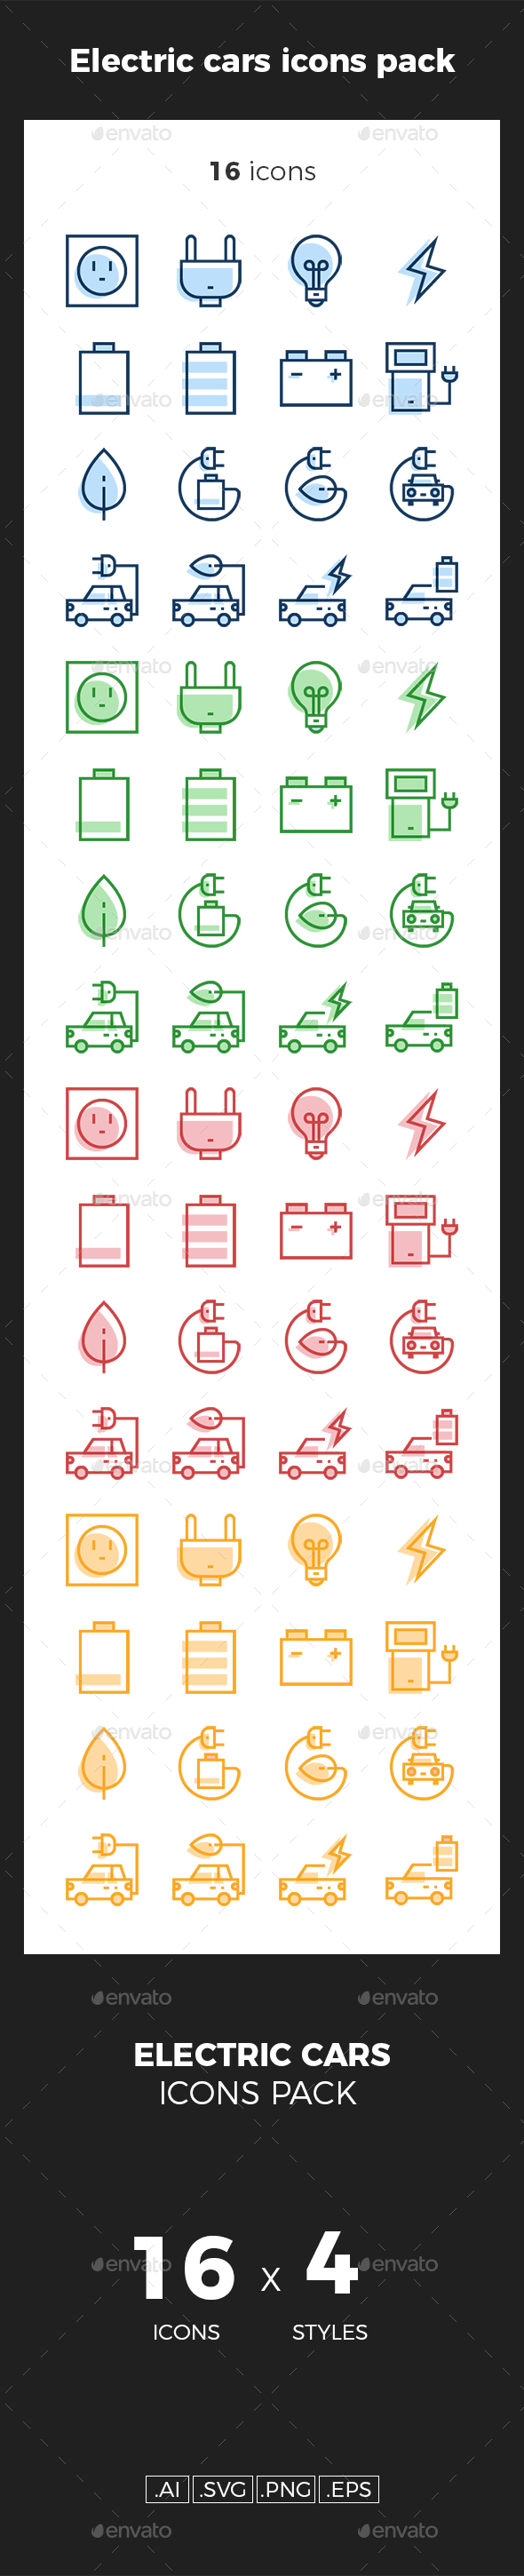 GraphicRiver Electric cars icons pack 20233367